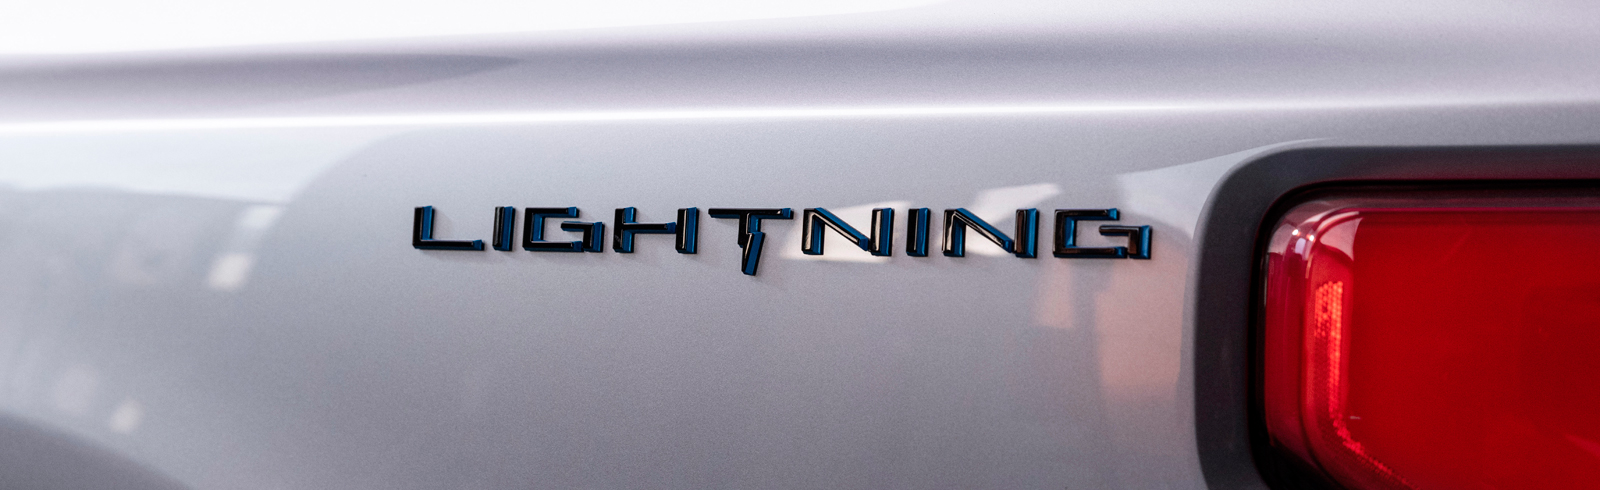 The Ford F-150 Lightning all-electric truck will be uveiled on May 19